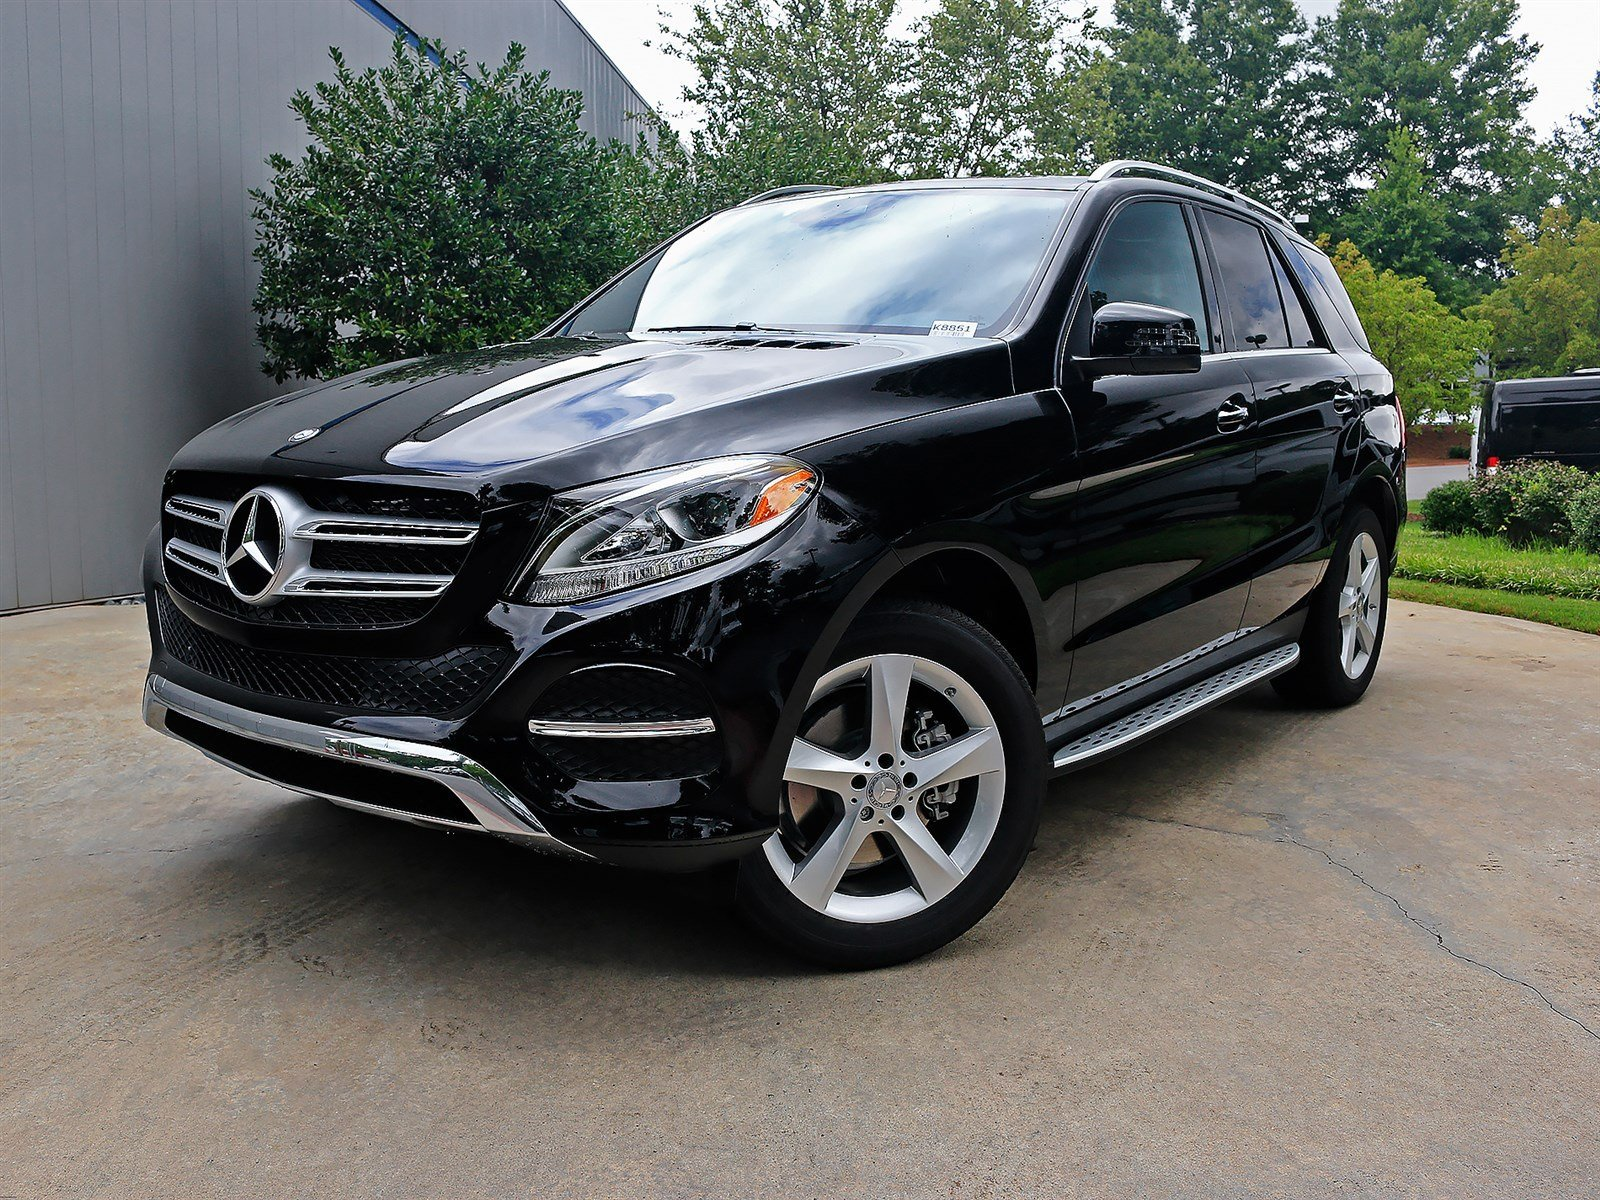 New 2017 mercedes benz gle gle350 sport utility in atlanta for 2017 mercedes benz gle350 4matic price